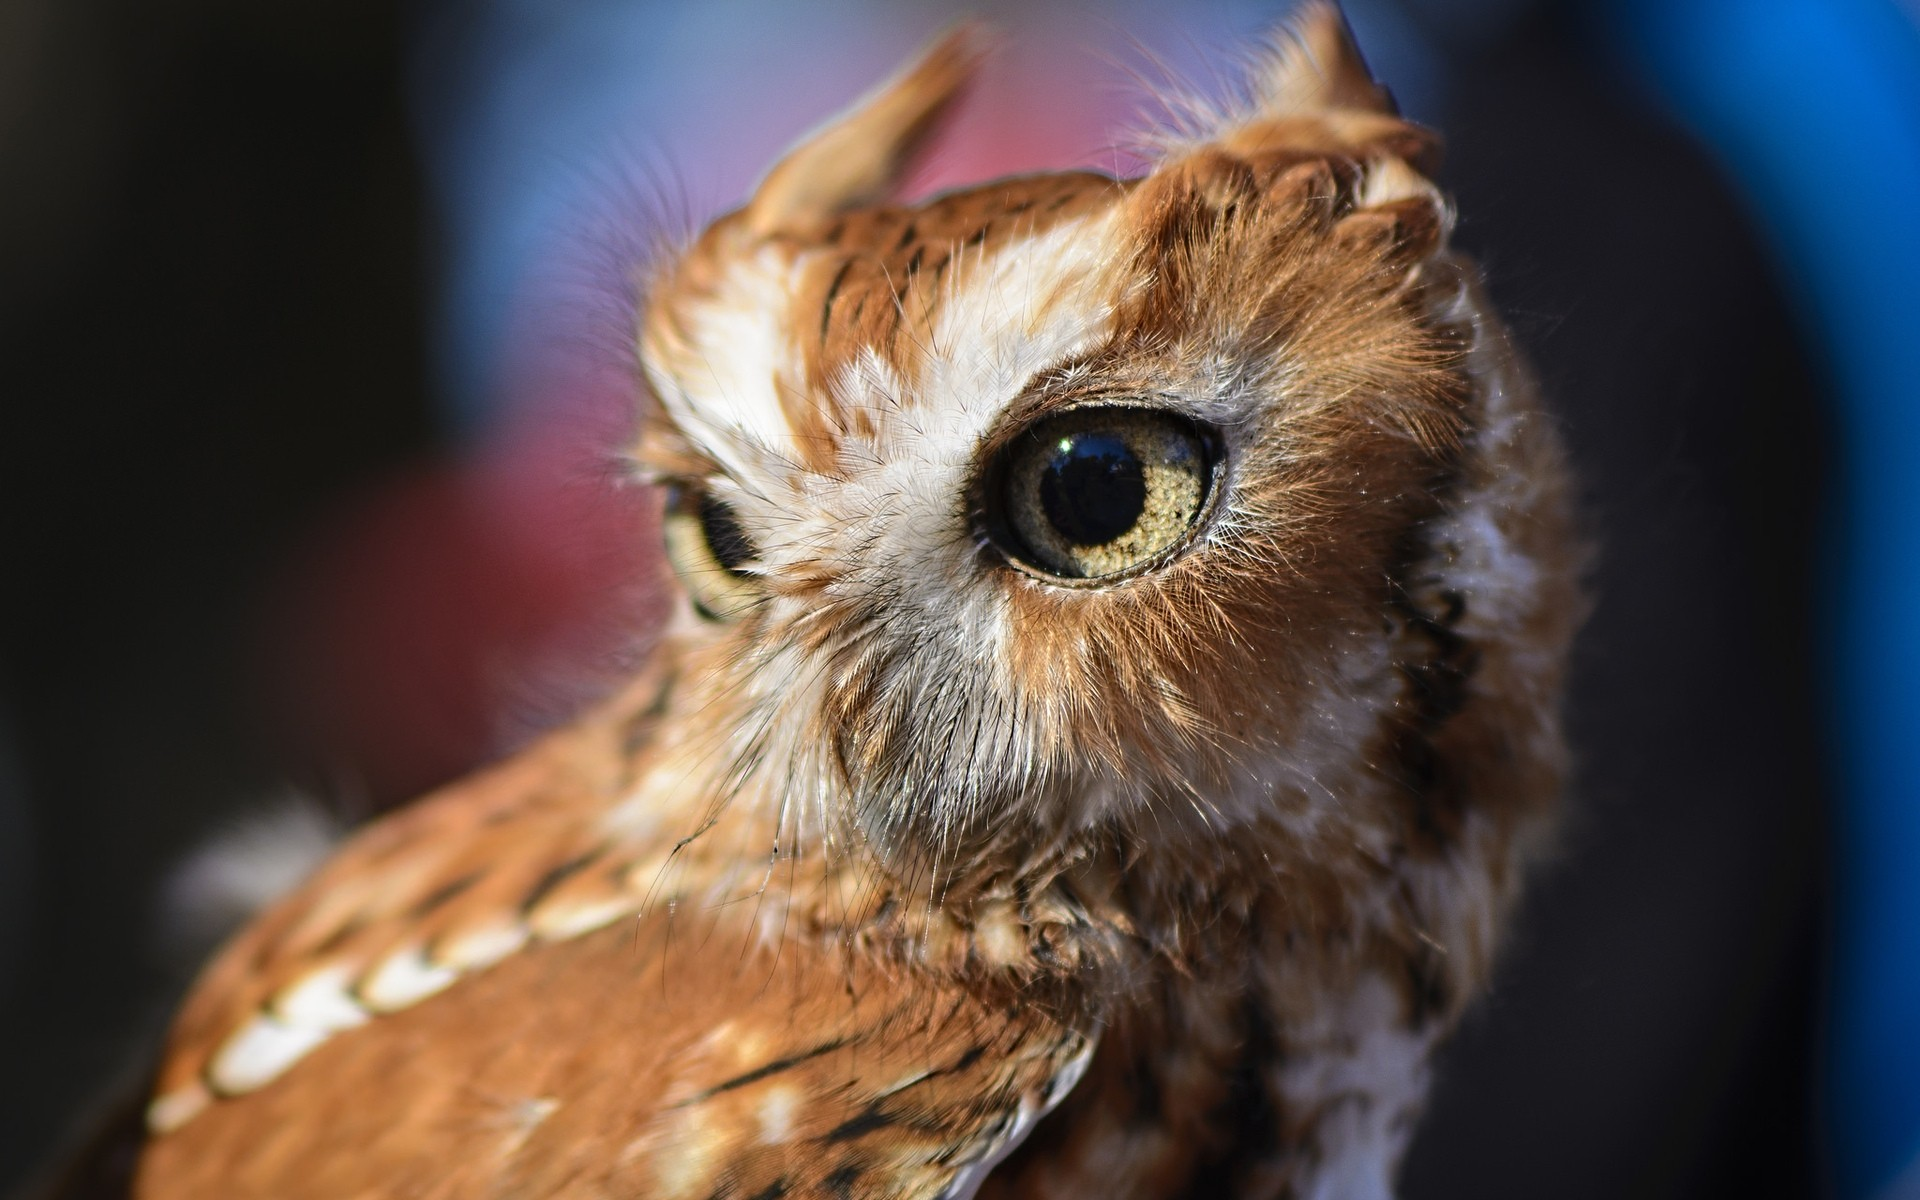 owl wildlife animal bird nature portrait little eye wild raptor cute looking outdoors